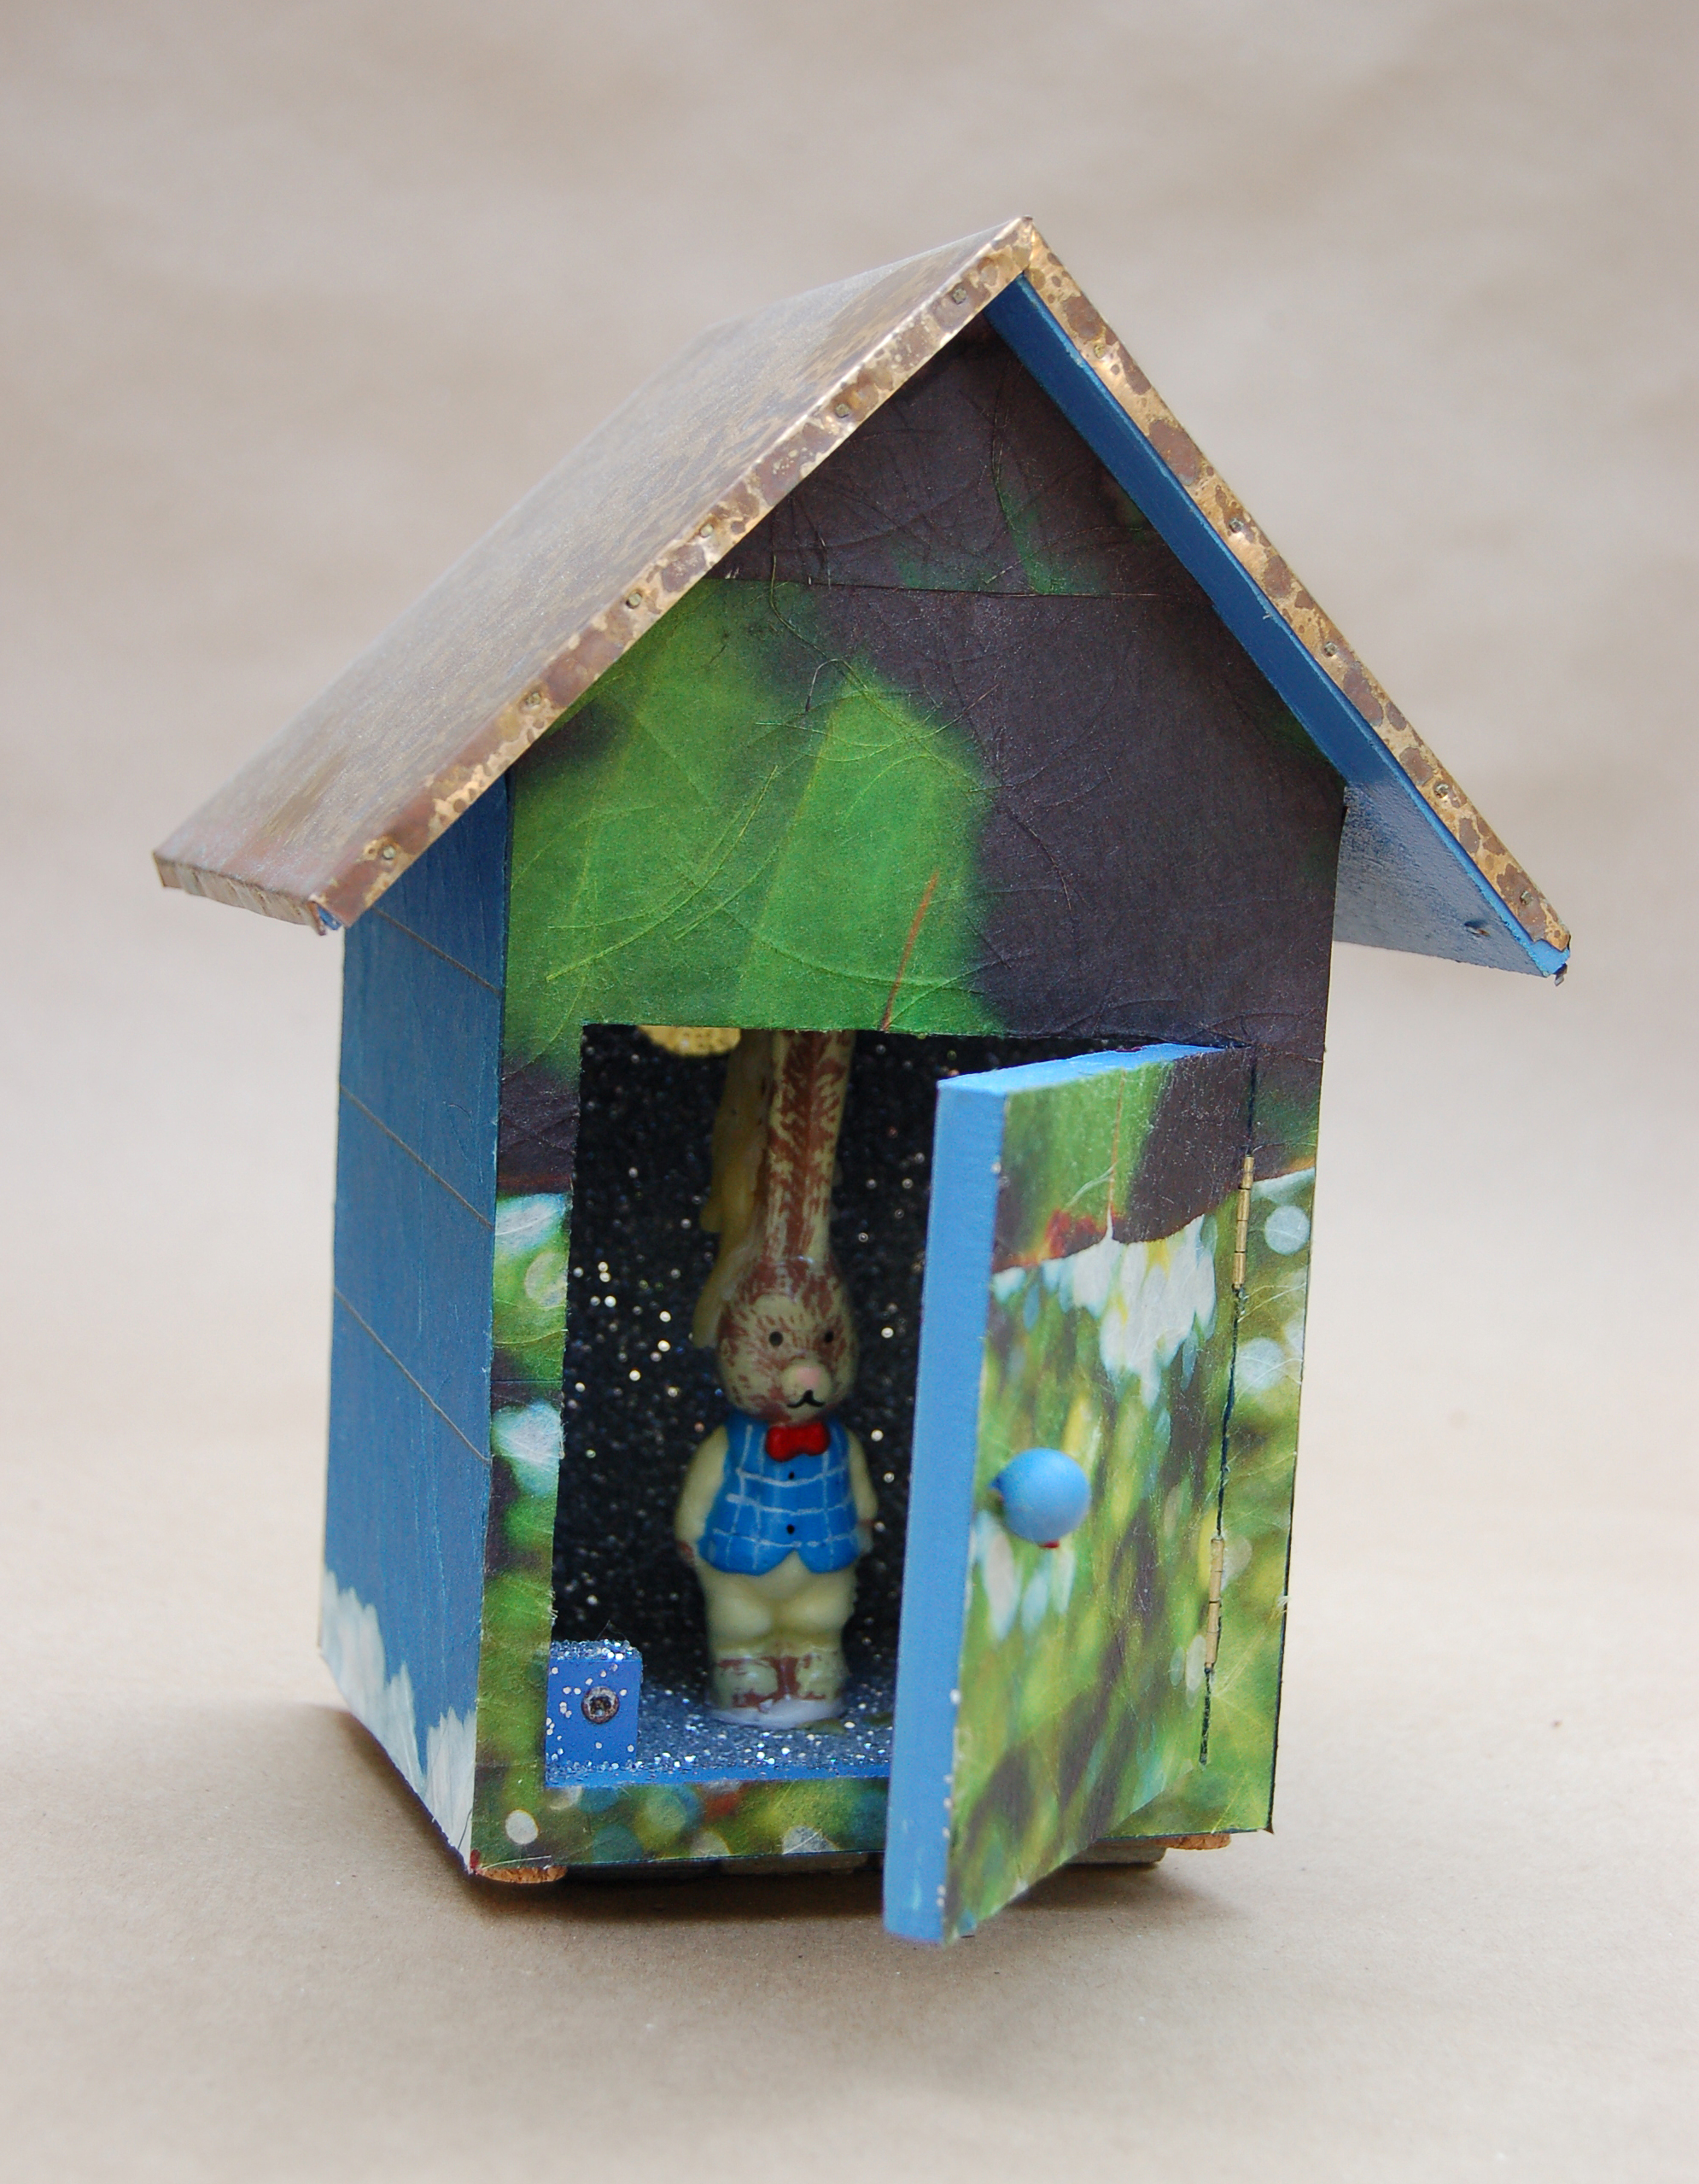 House for Fintan